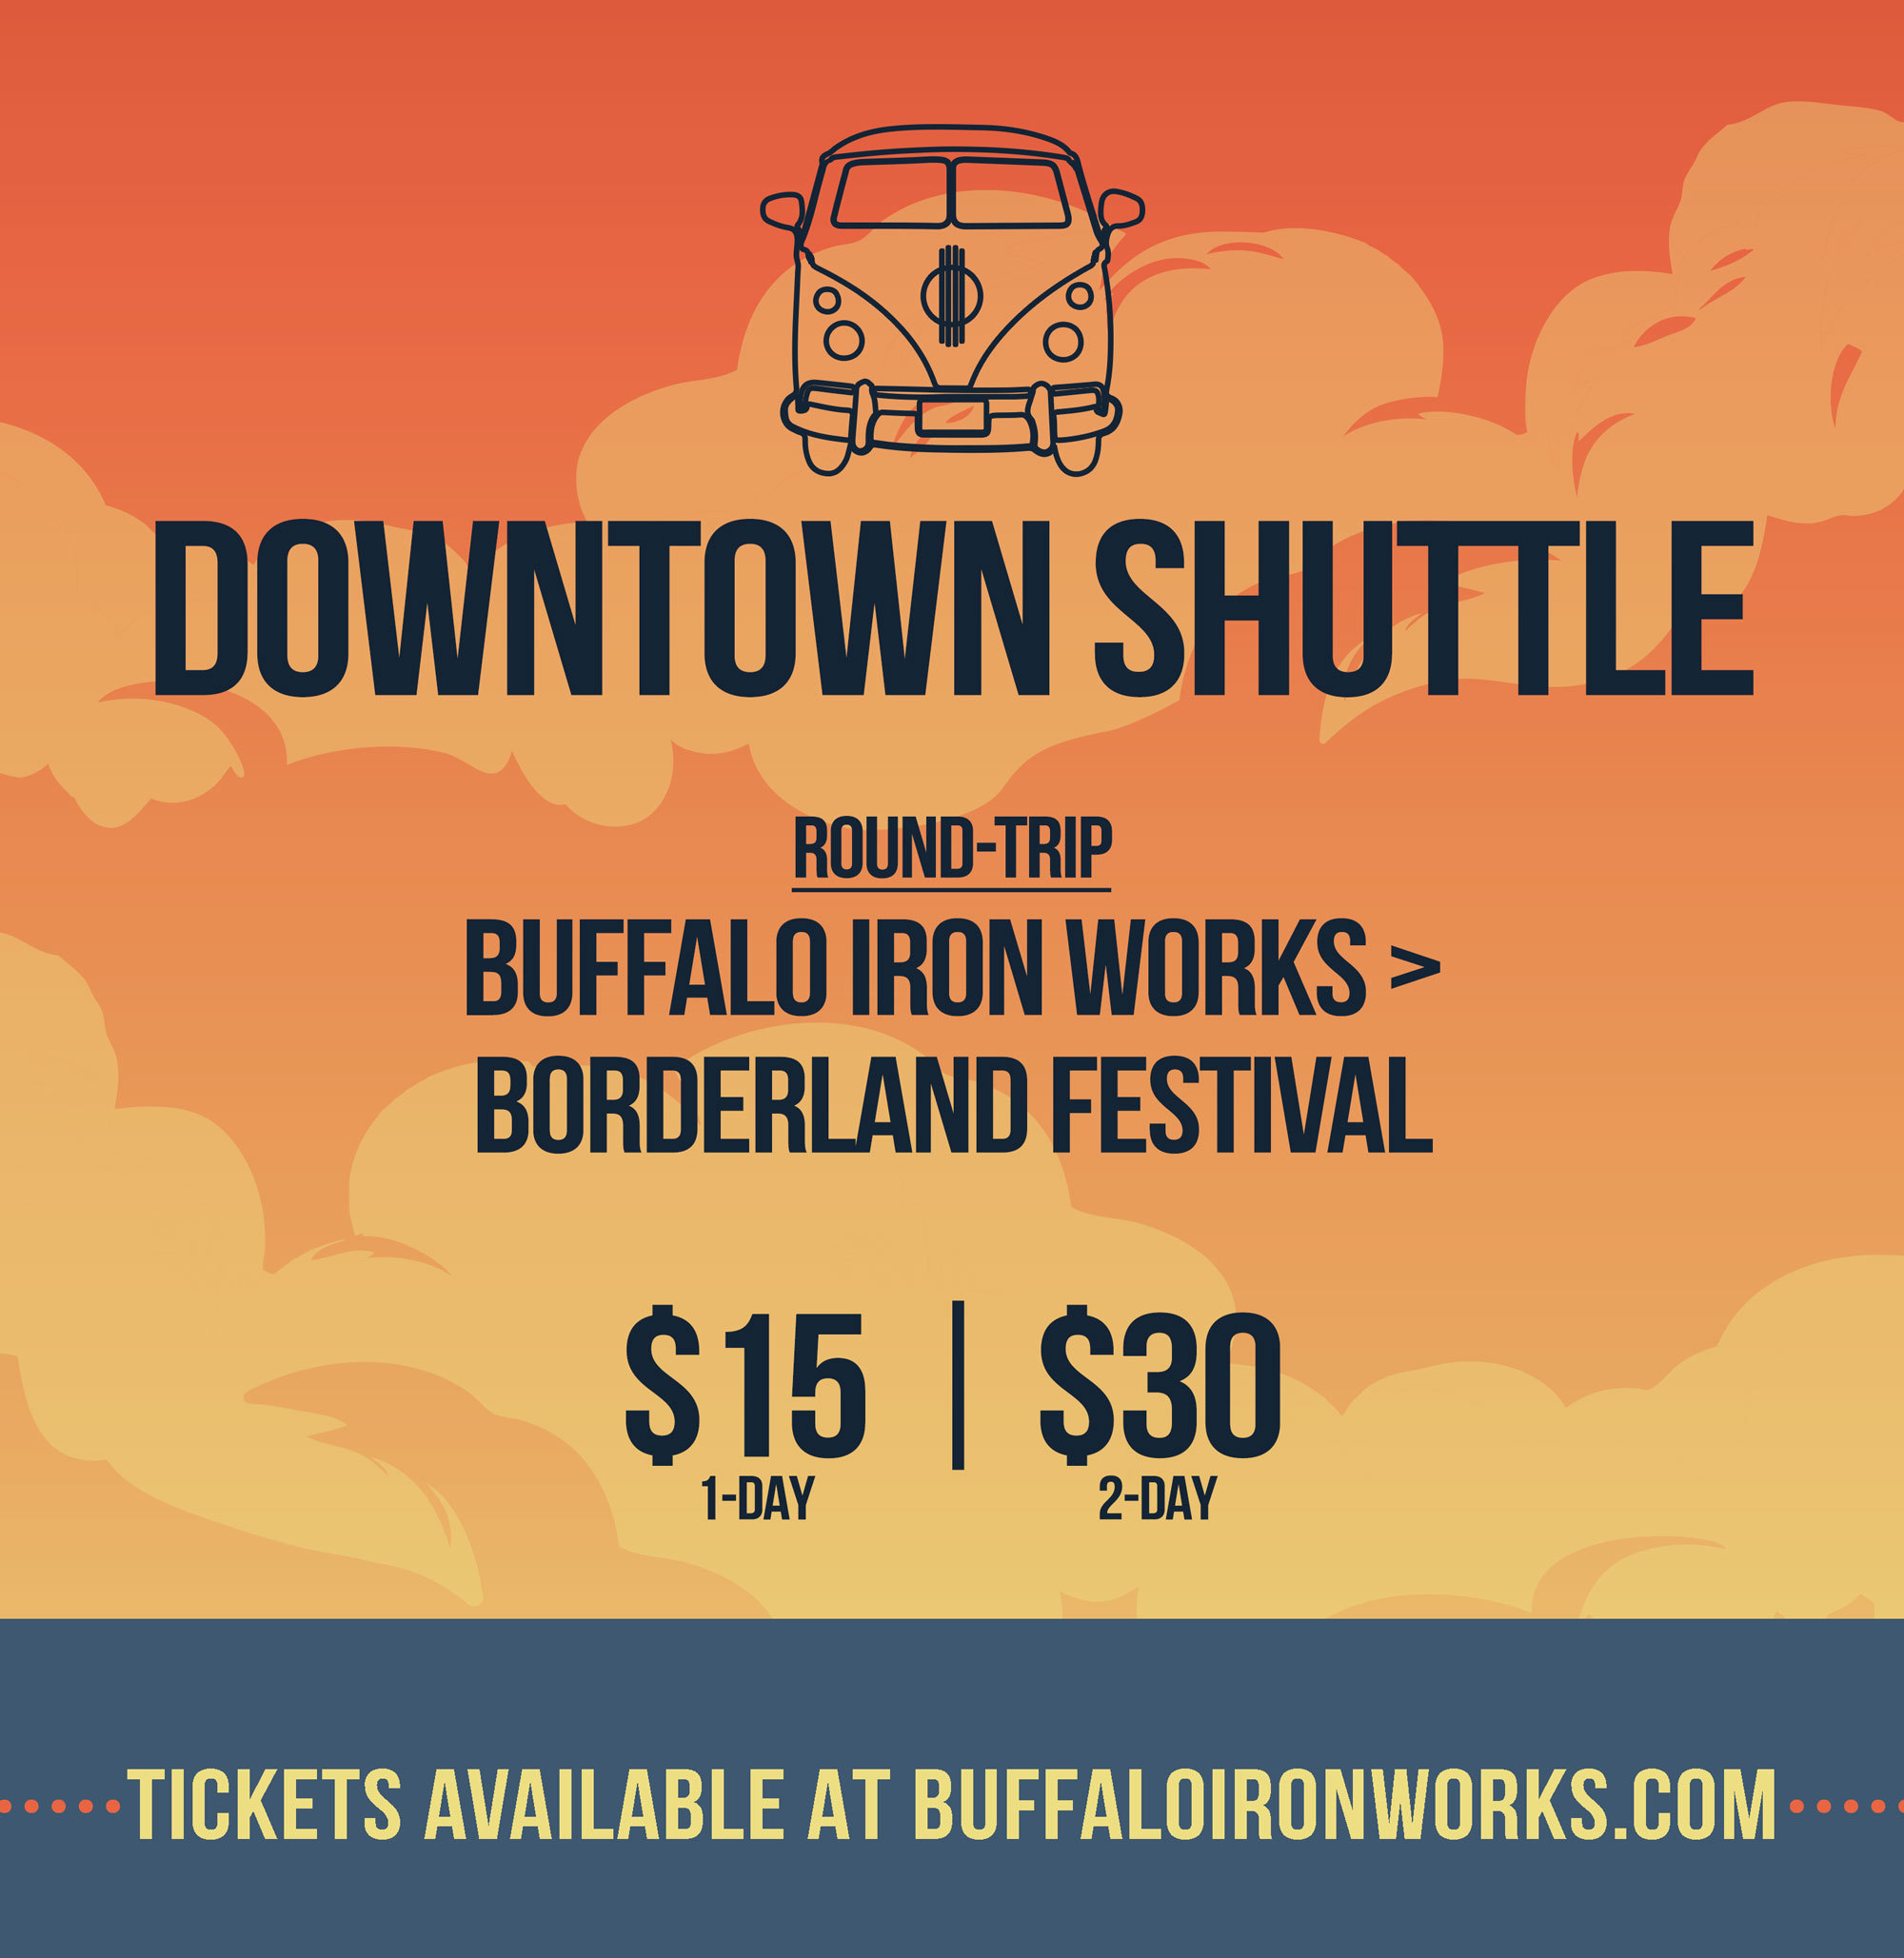 DOWNTOWN SHUTTLE TO BORDERLAND